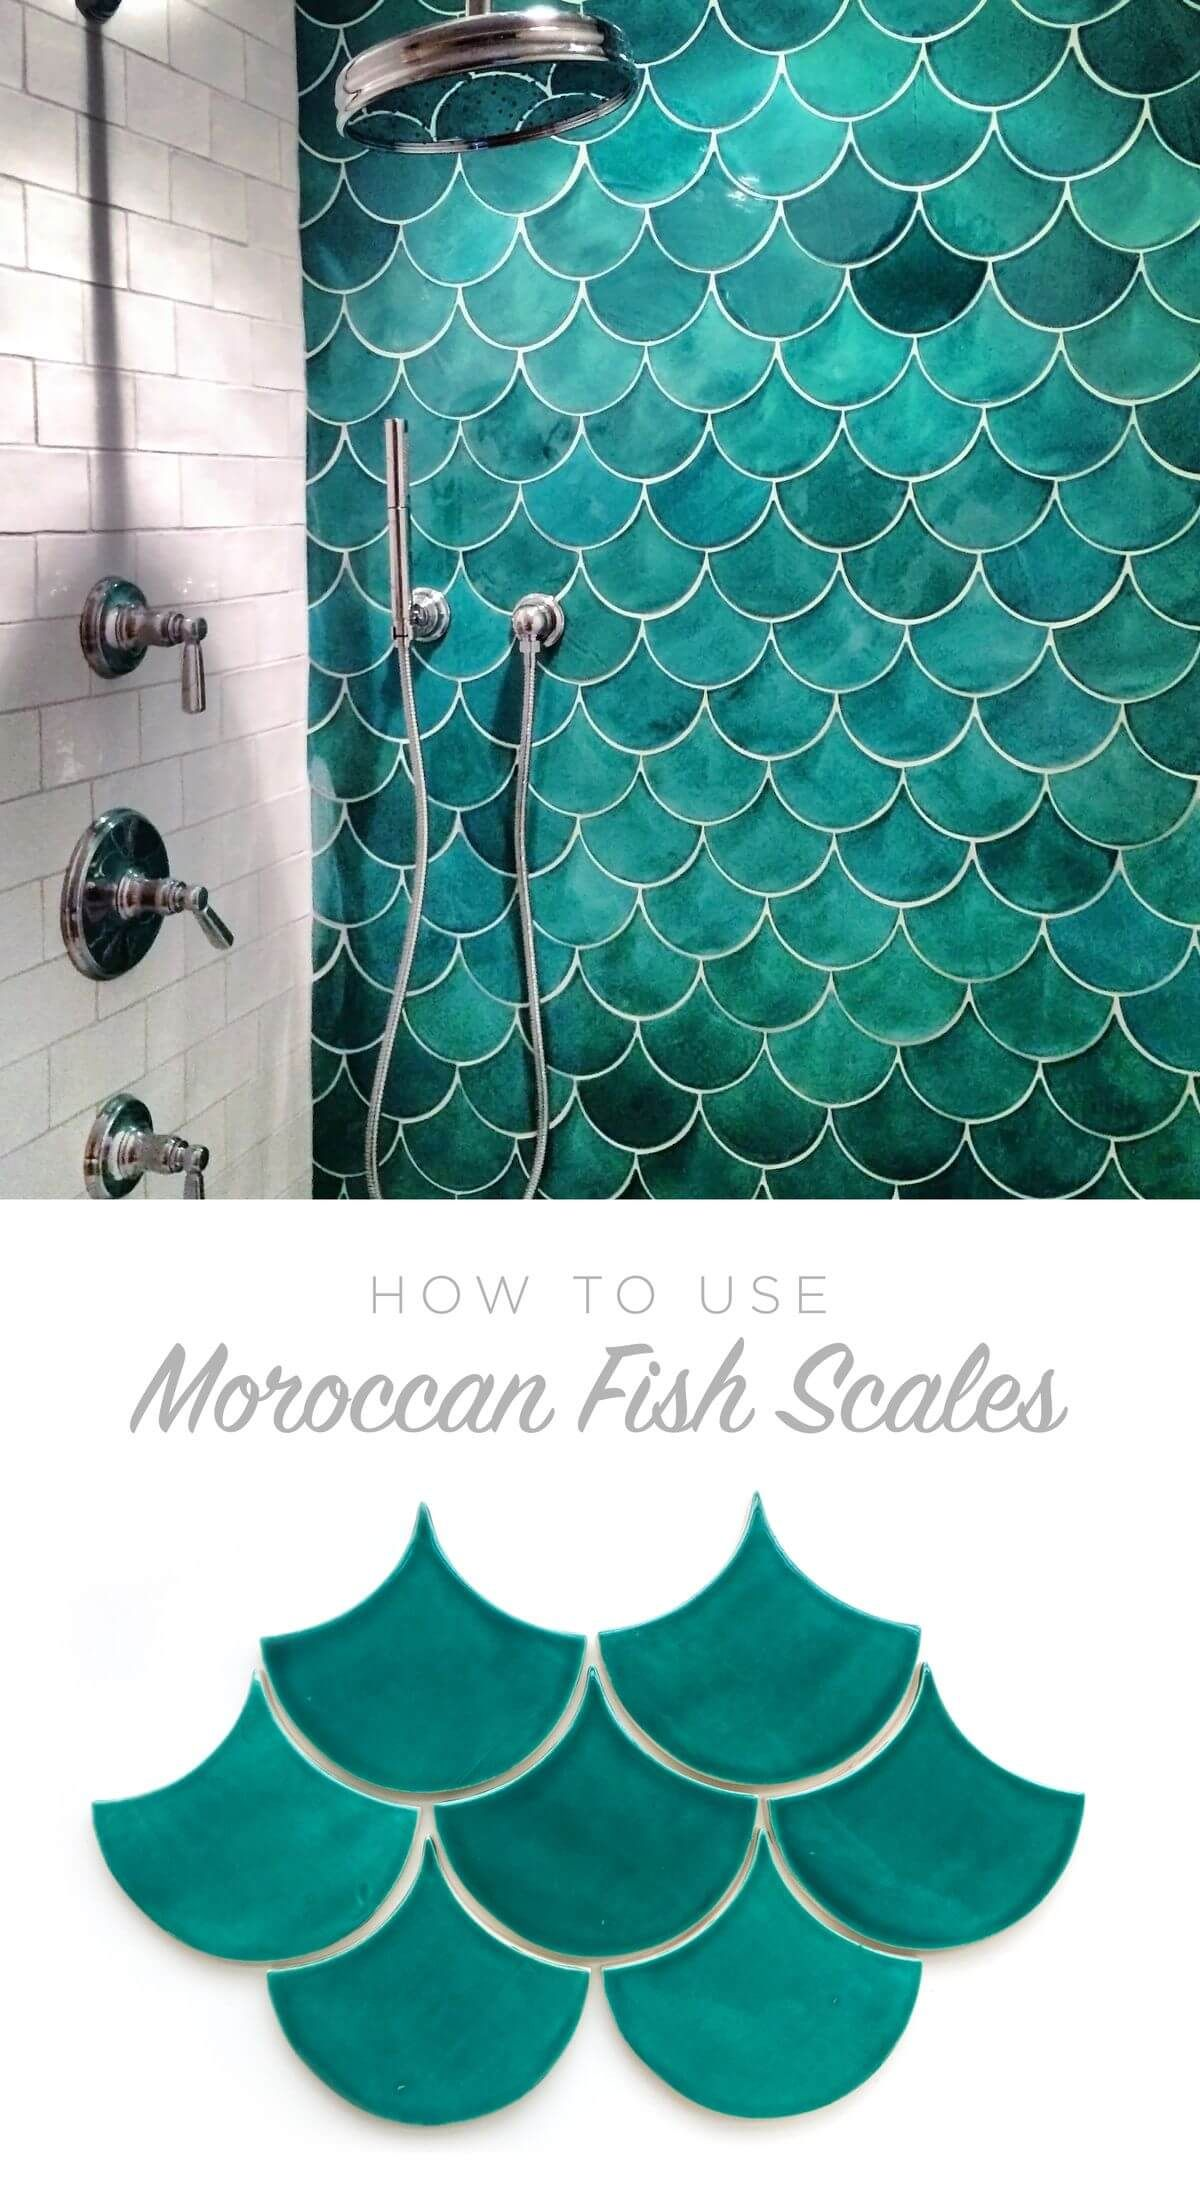 32 Best Shower Tile Ideas That Will Transform Your Bathroom | Fish ...